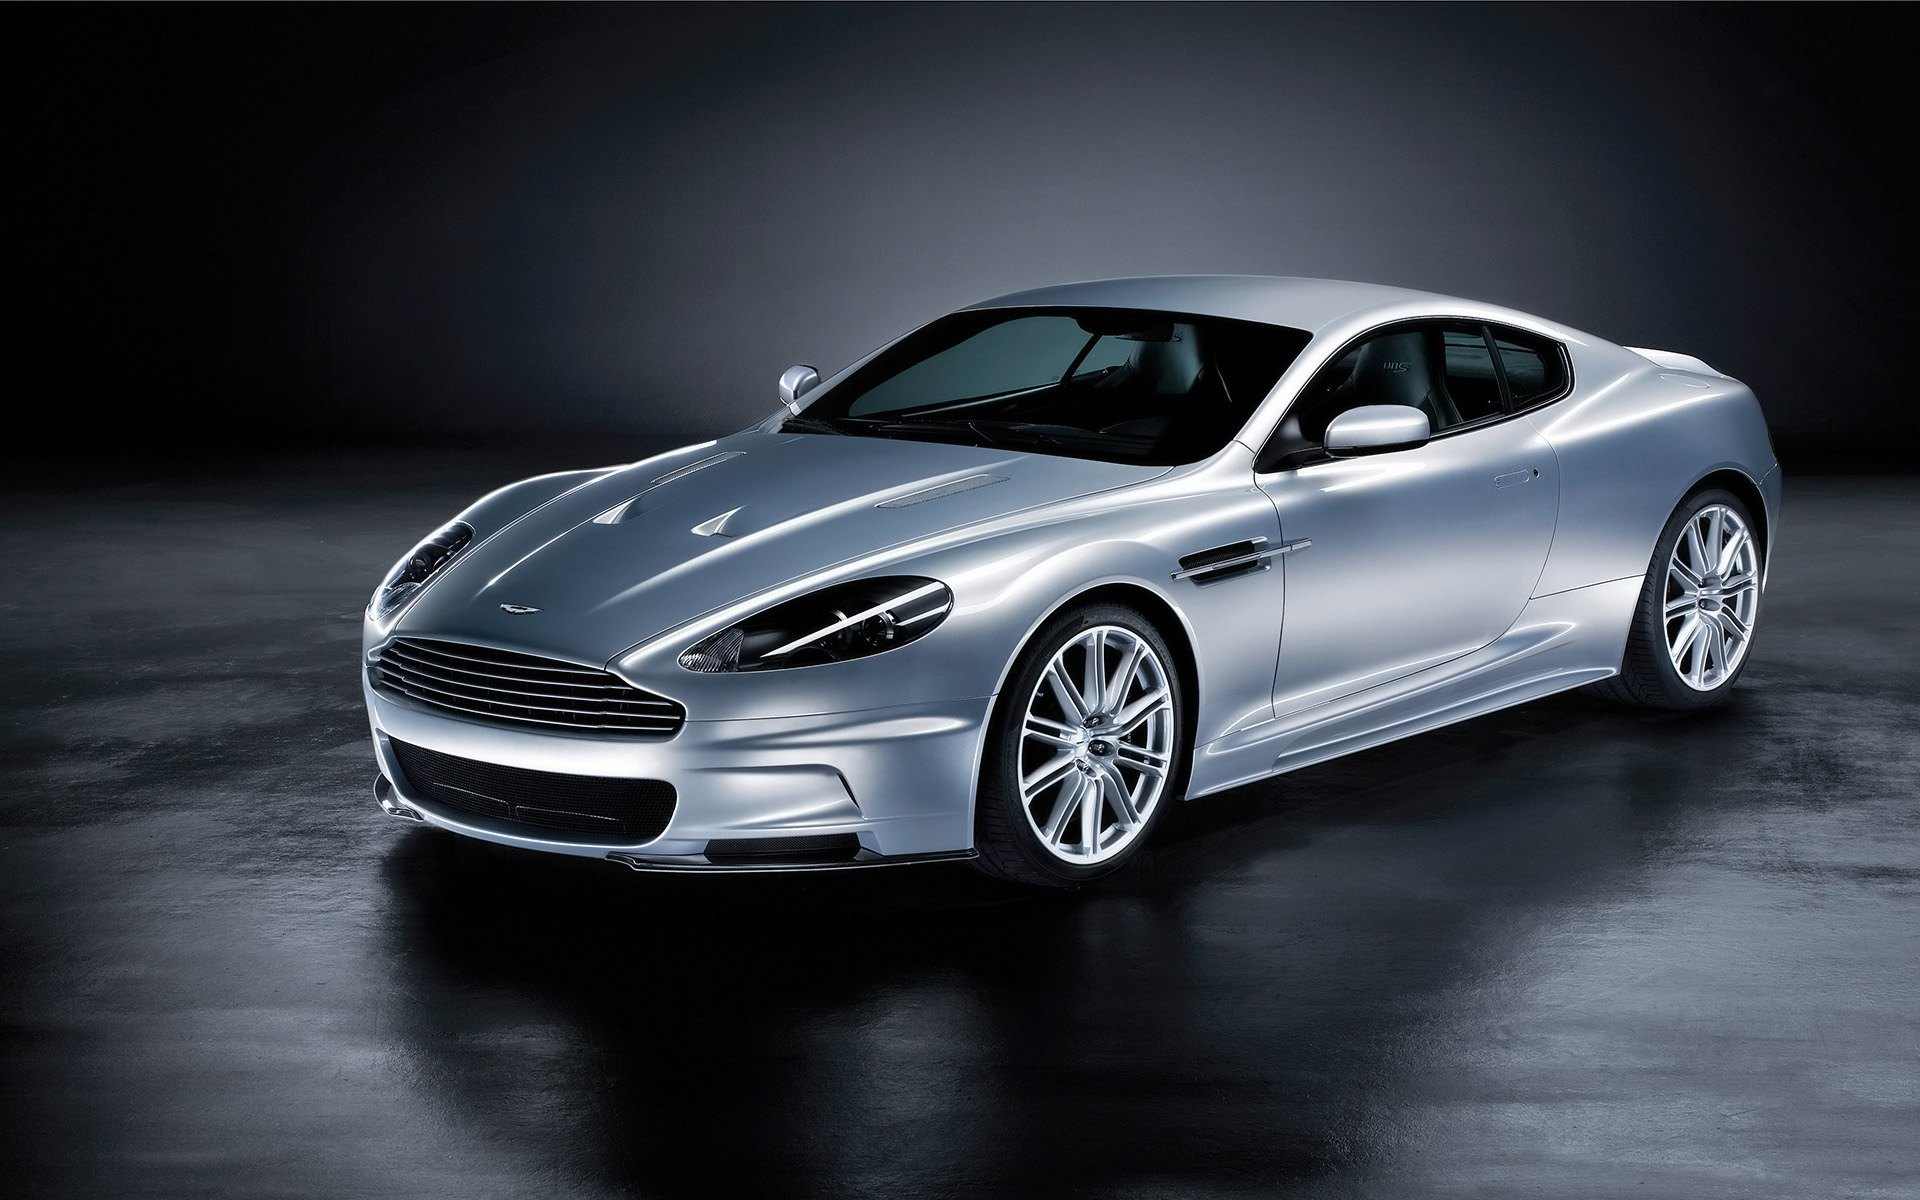 Aston Martin Dbs Wallpaper 159609